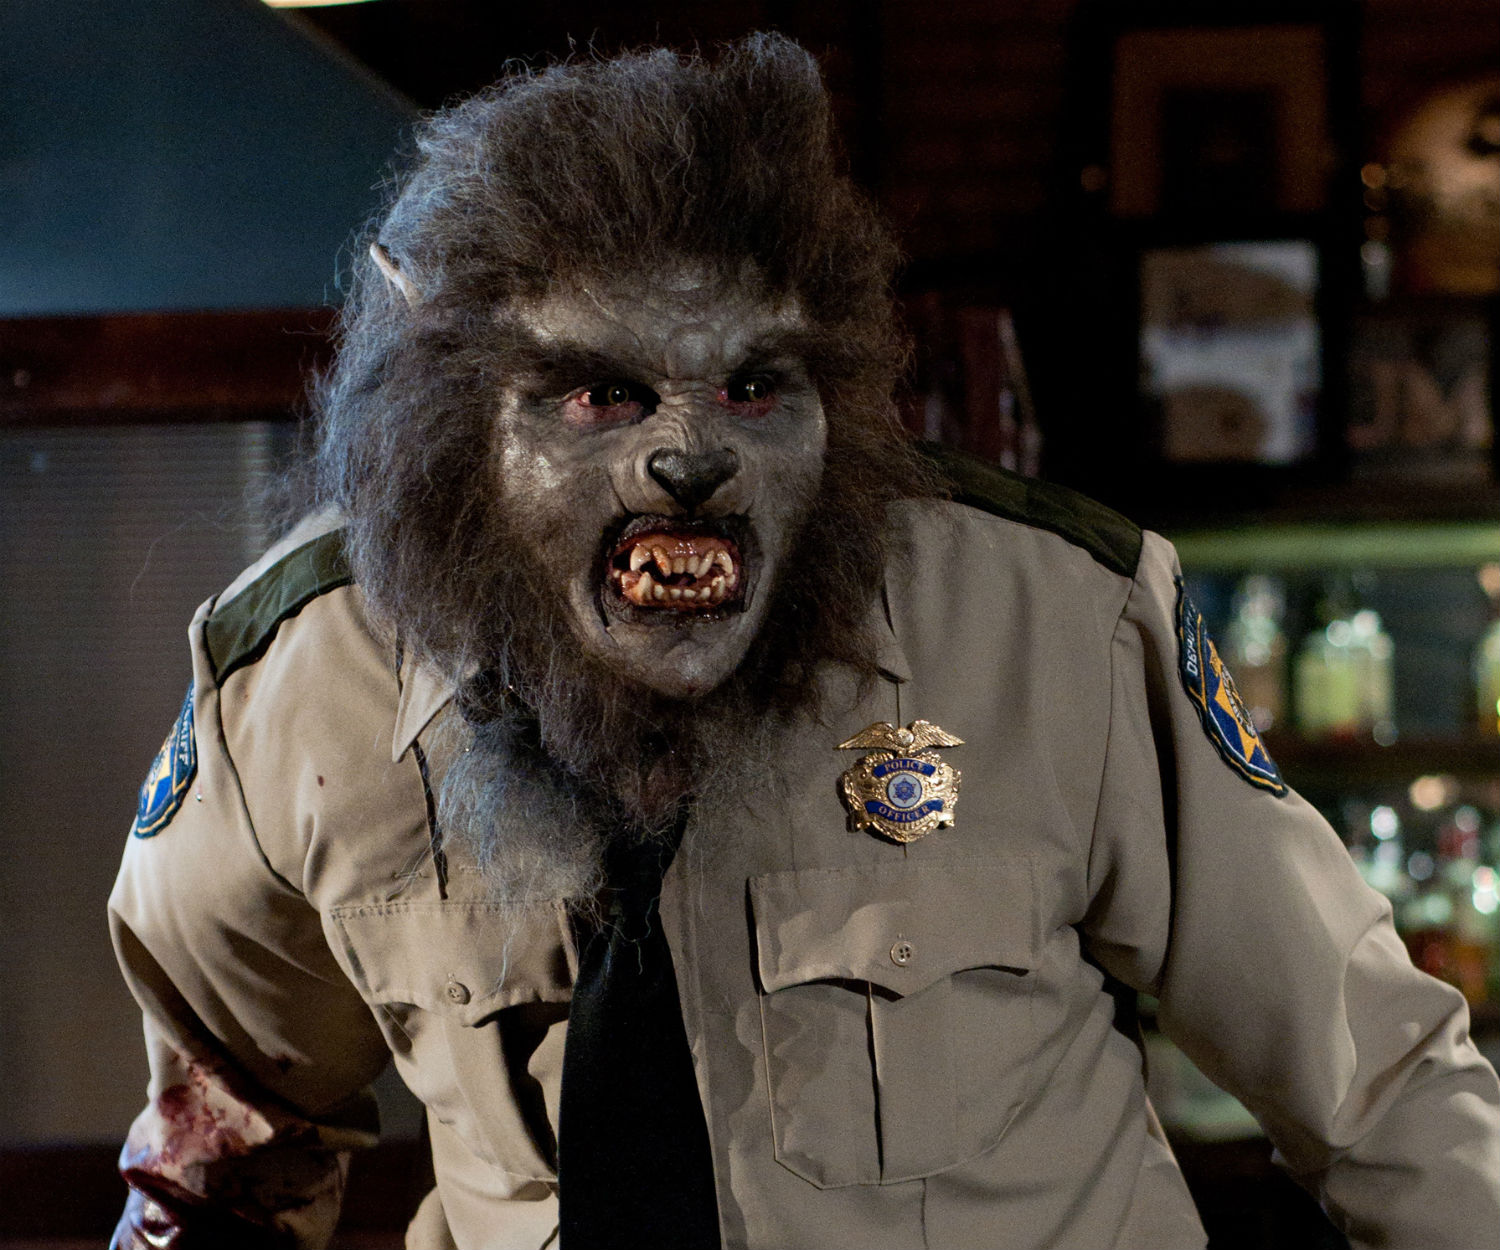 wolfcop horror b movie bar make-up